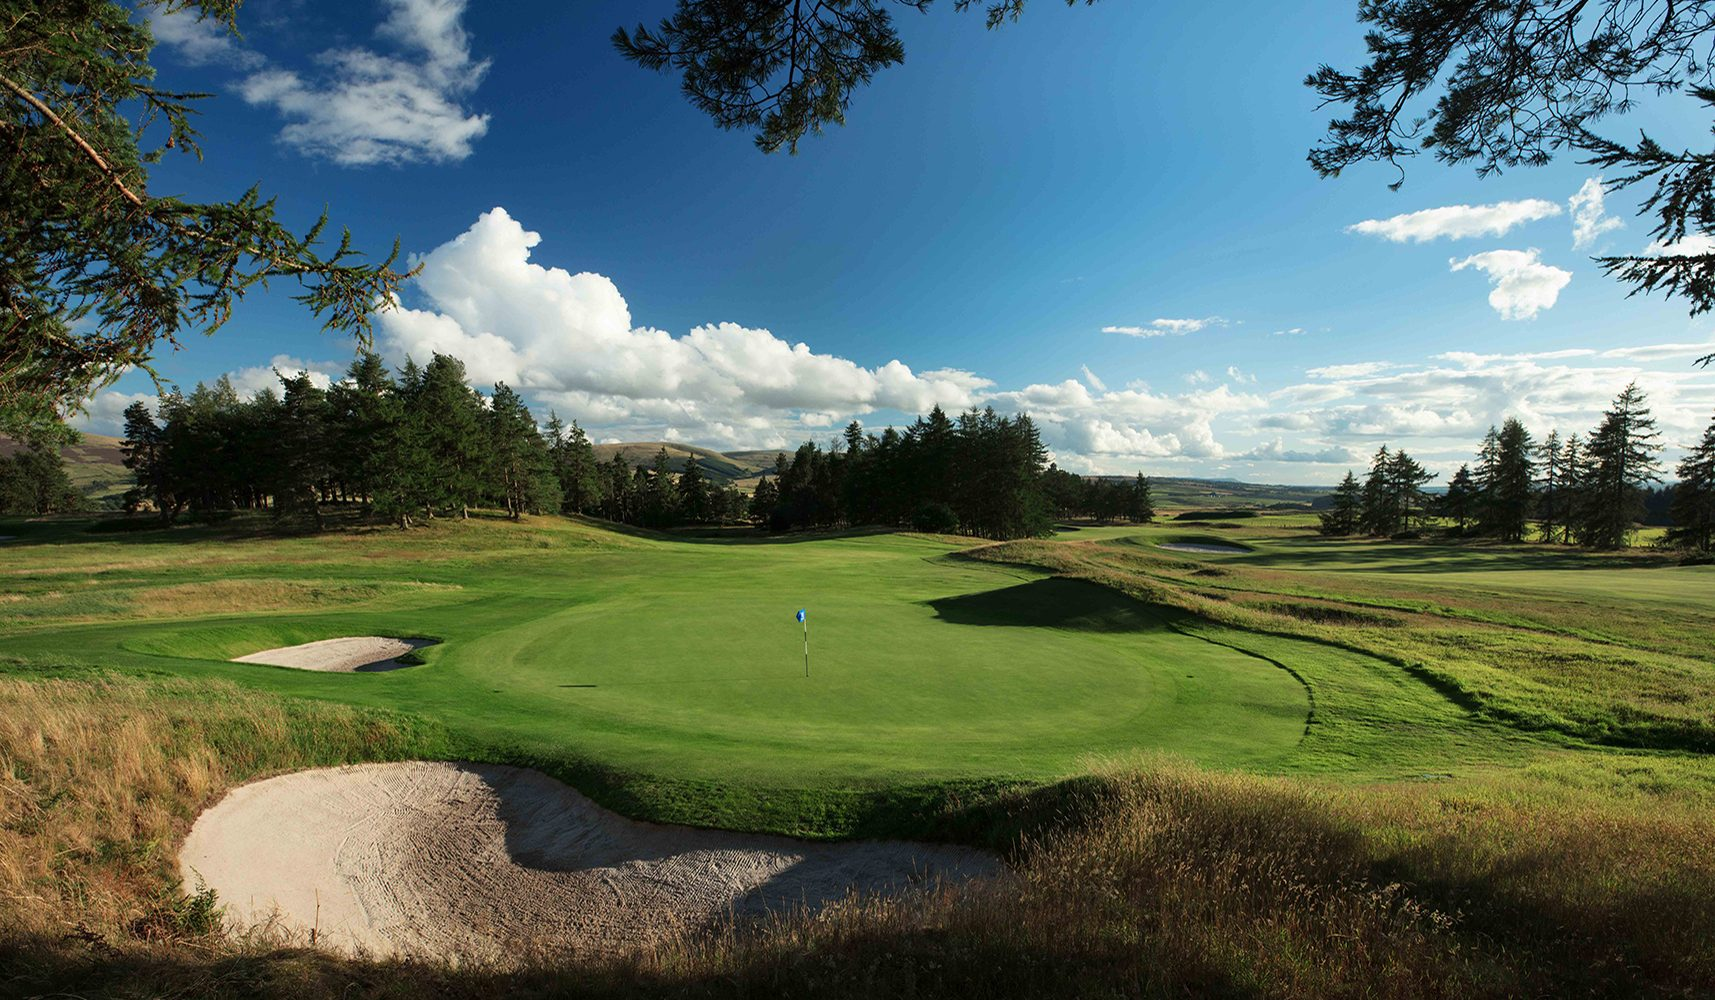 9th green of the queens course at Gleneagles